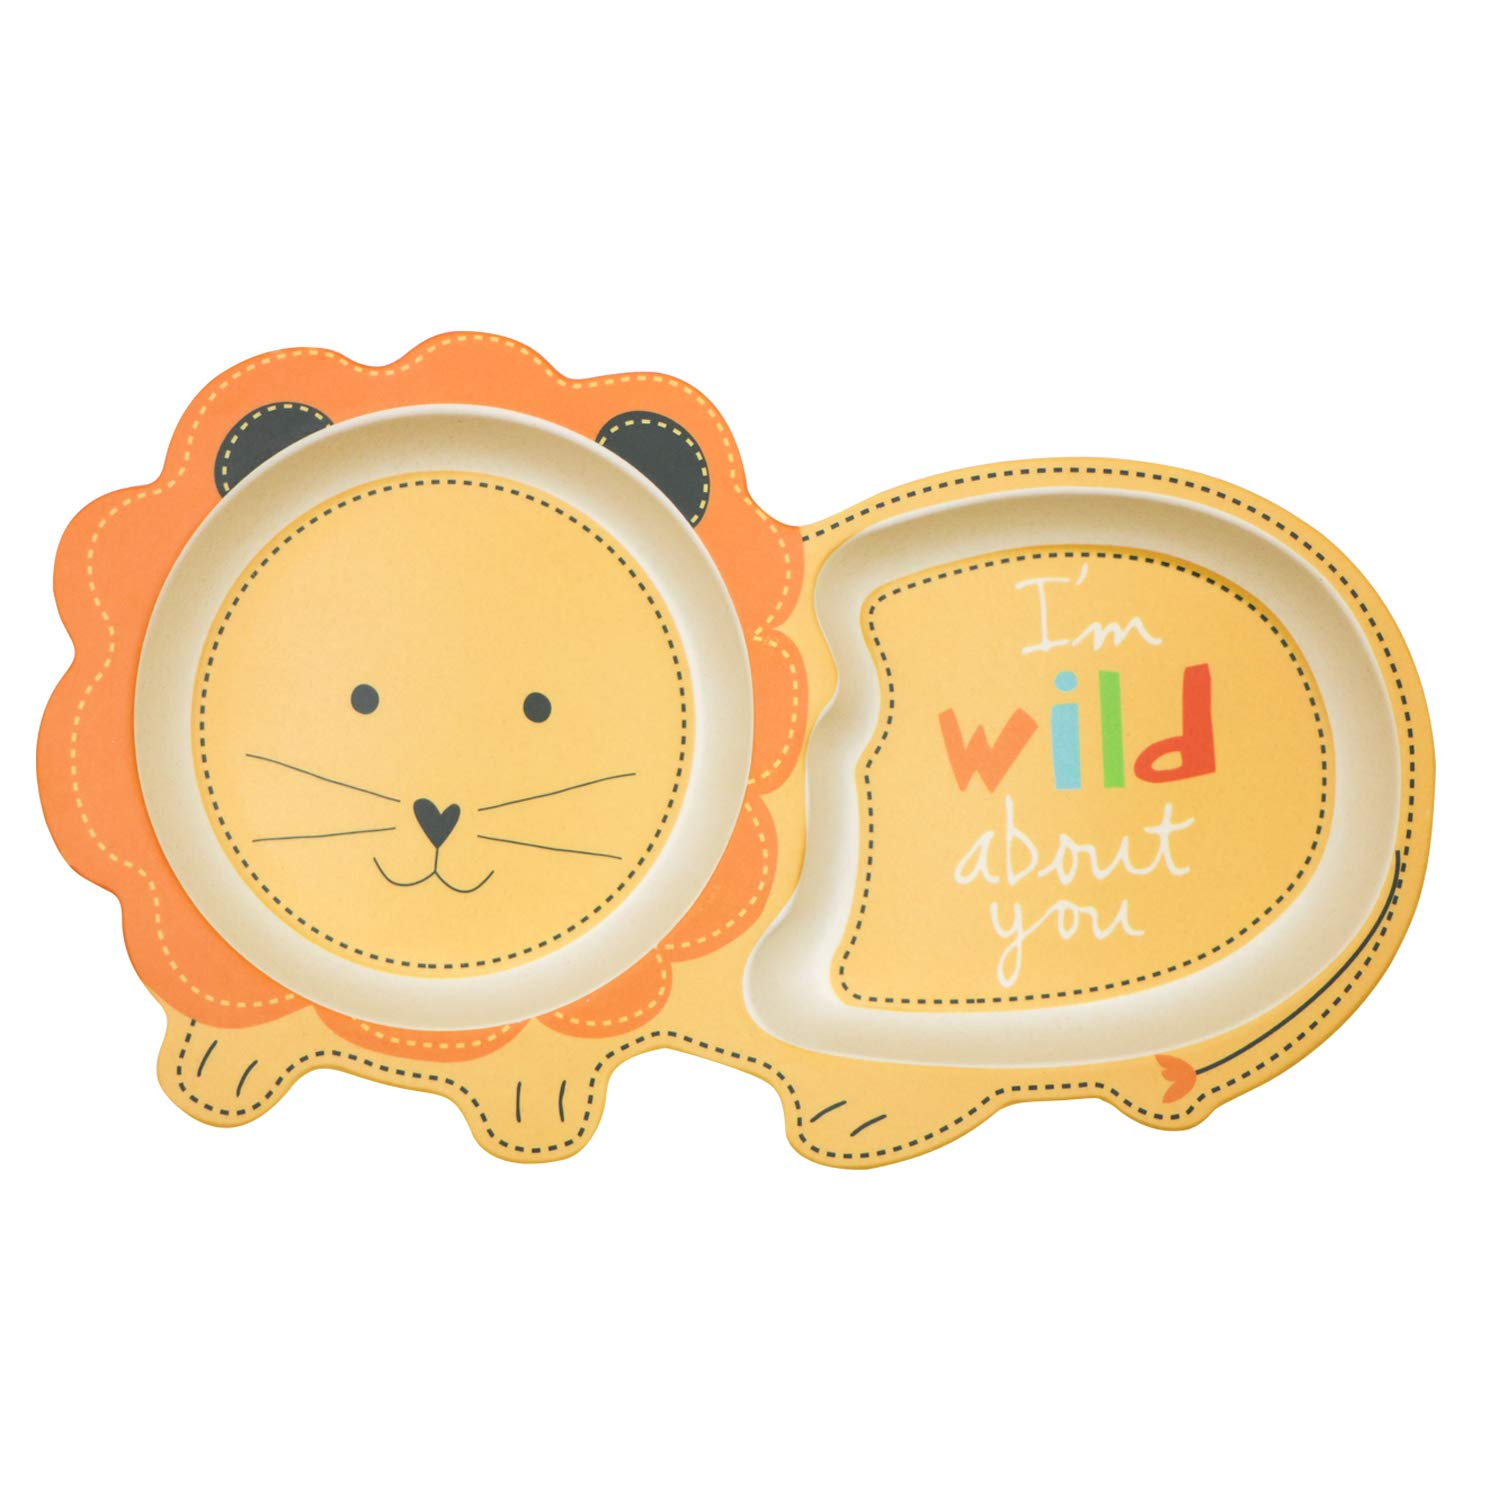 Pack of 2 Elephant Shape 2 PCS Baby Weaning Bowl with Compartments BPA Free Children Sectioned Plate Toddler Divided Plates Baby Feeding Plate Kids Bamboo Plates